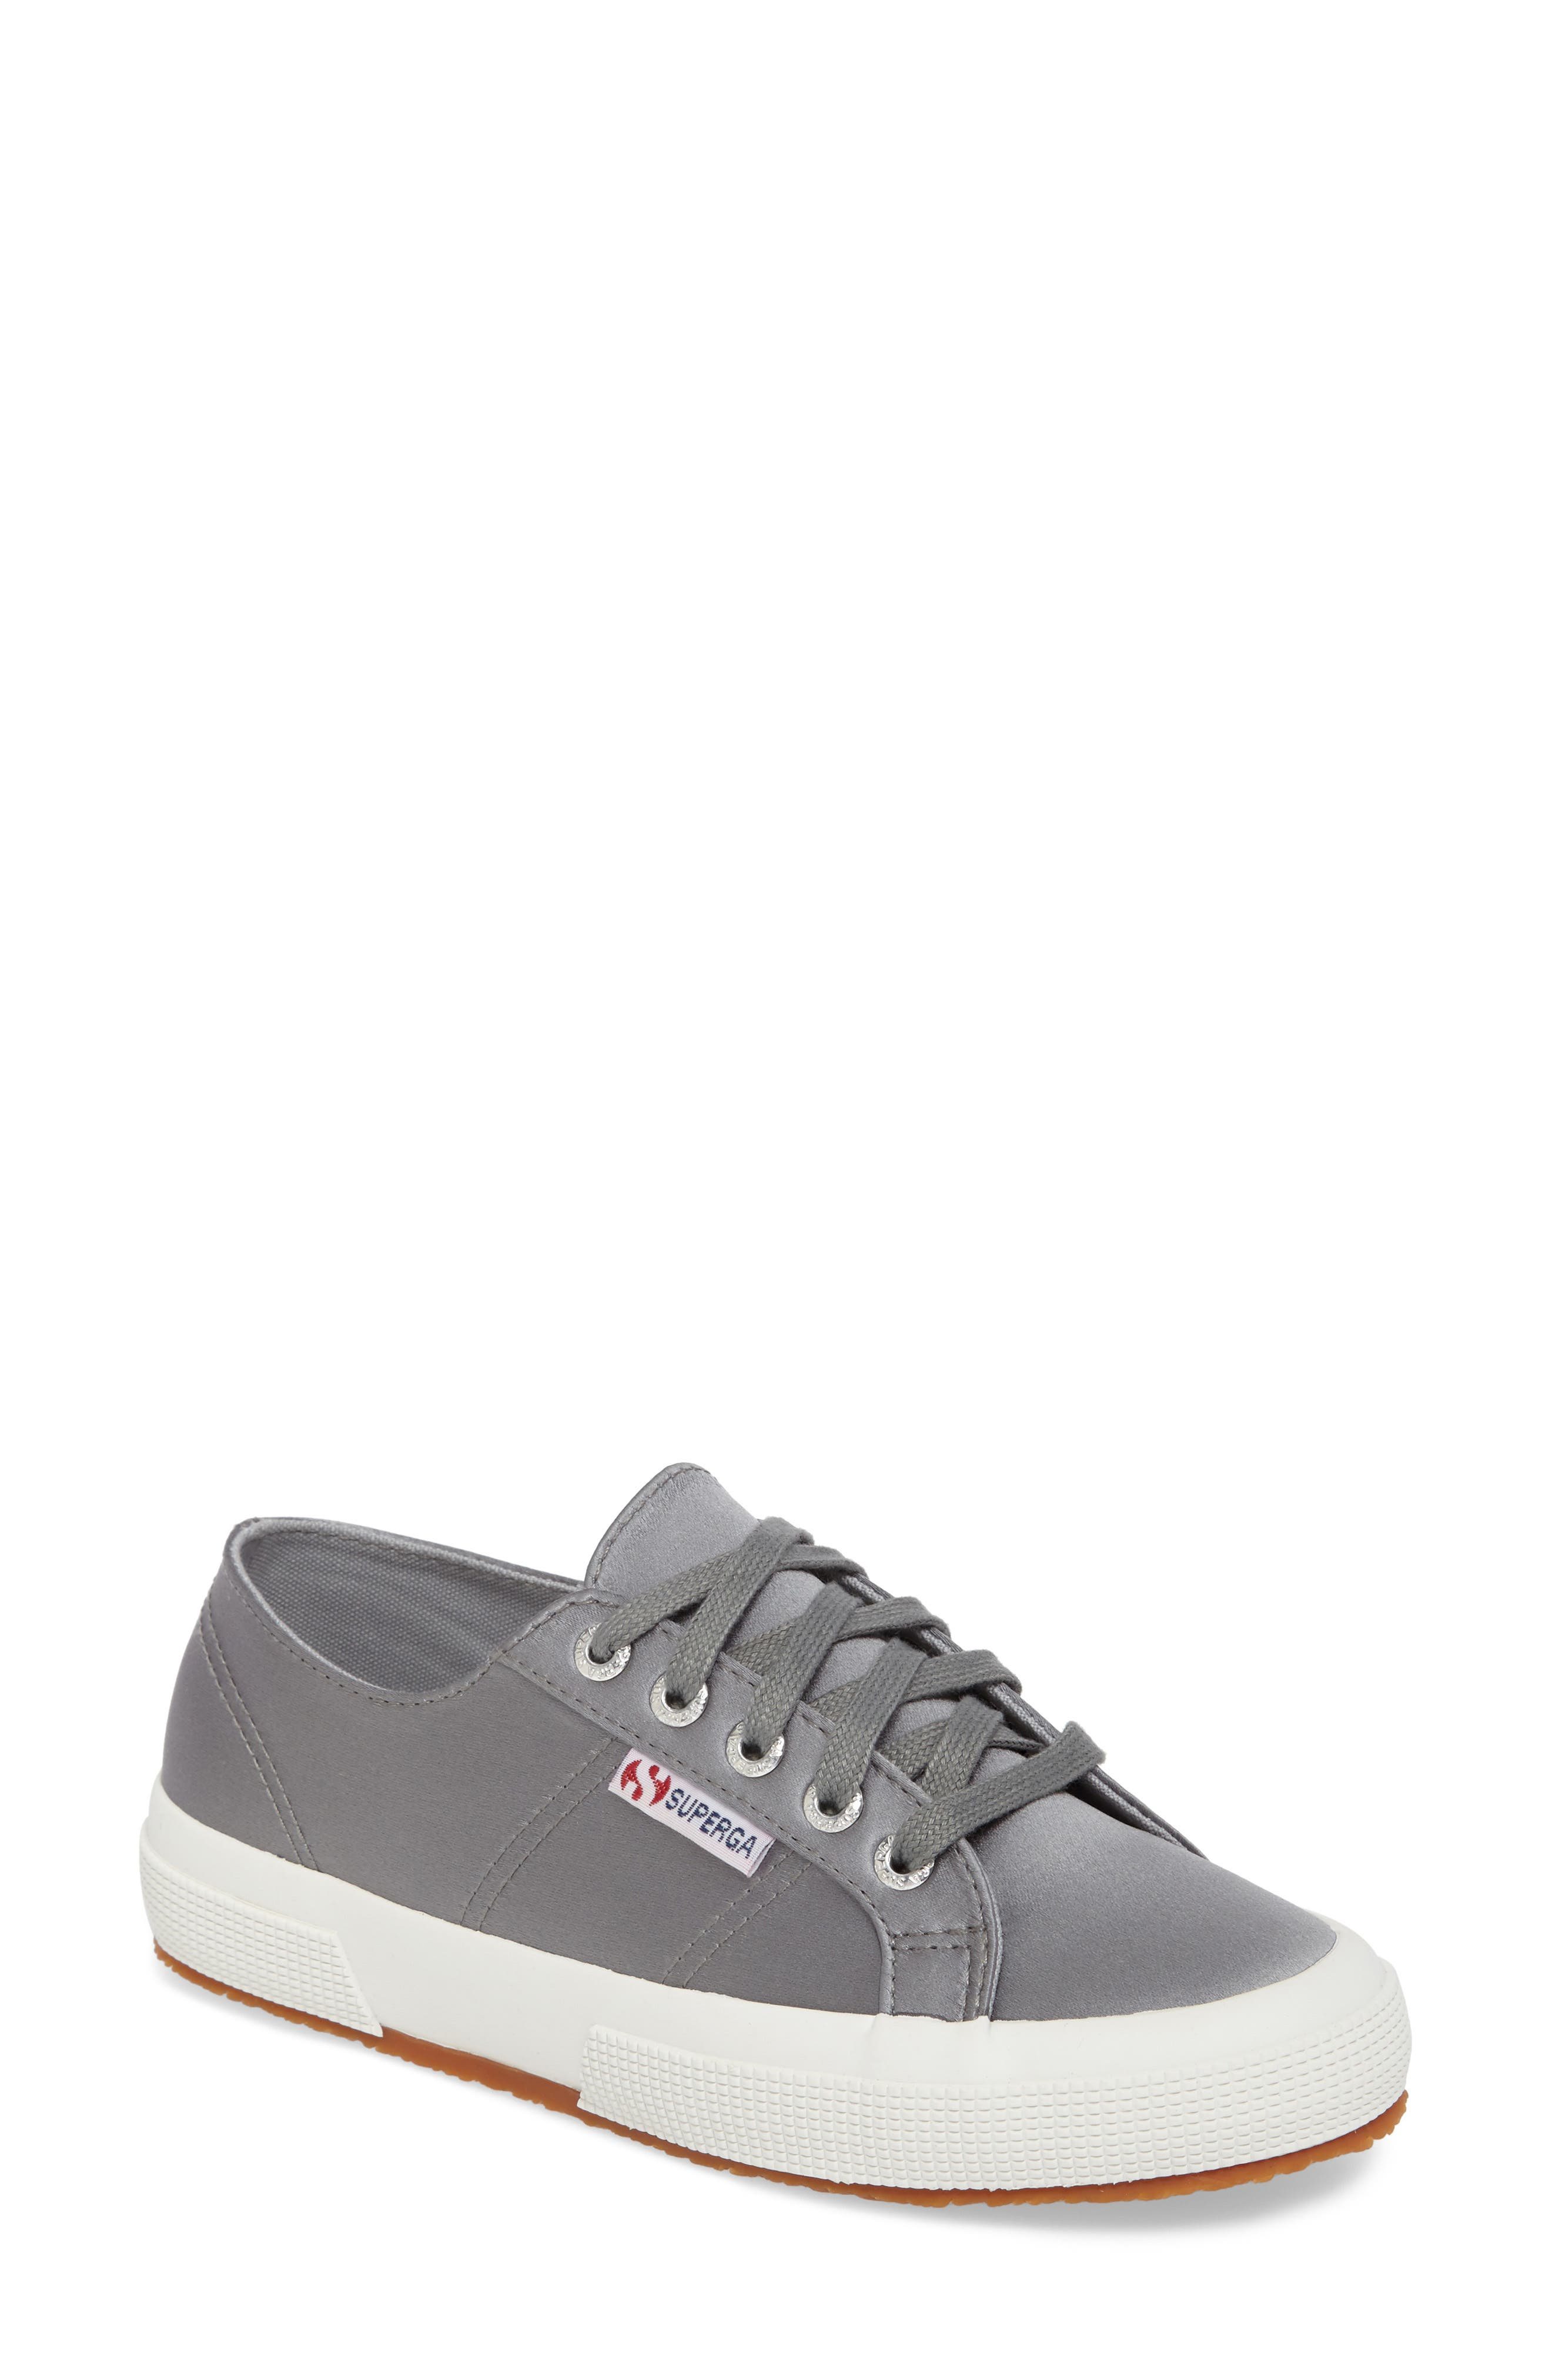 Superga Satin Sneaker (Women)